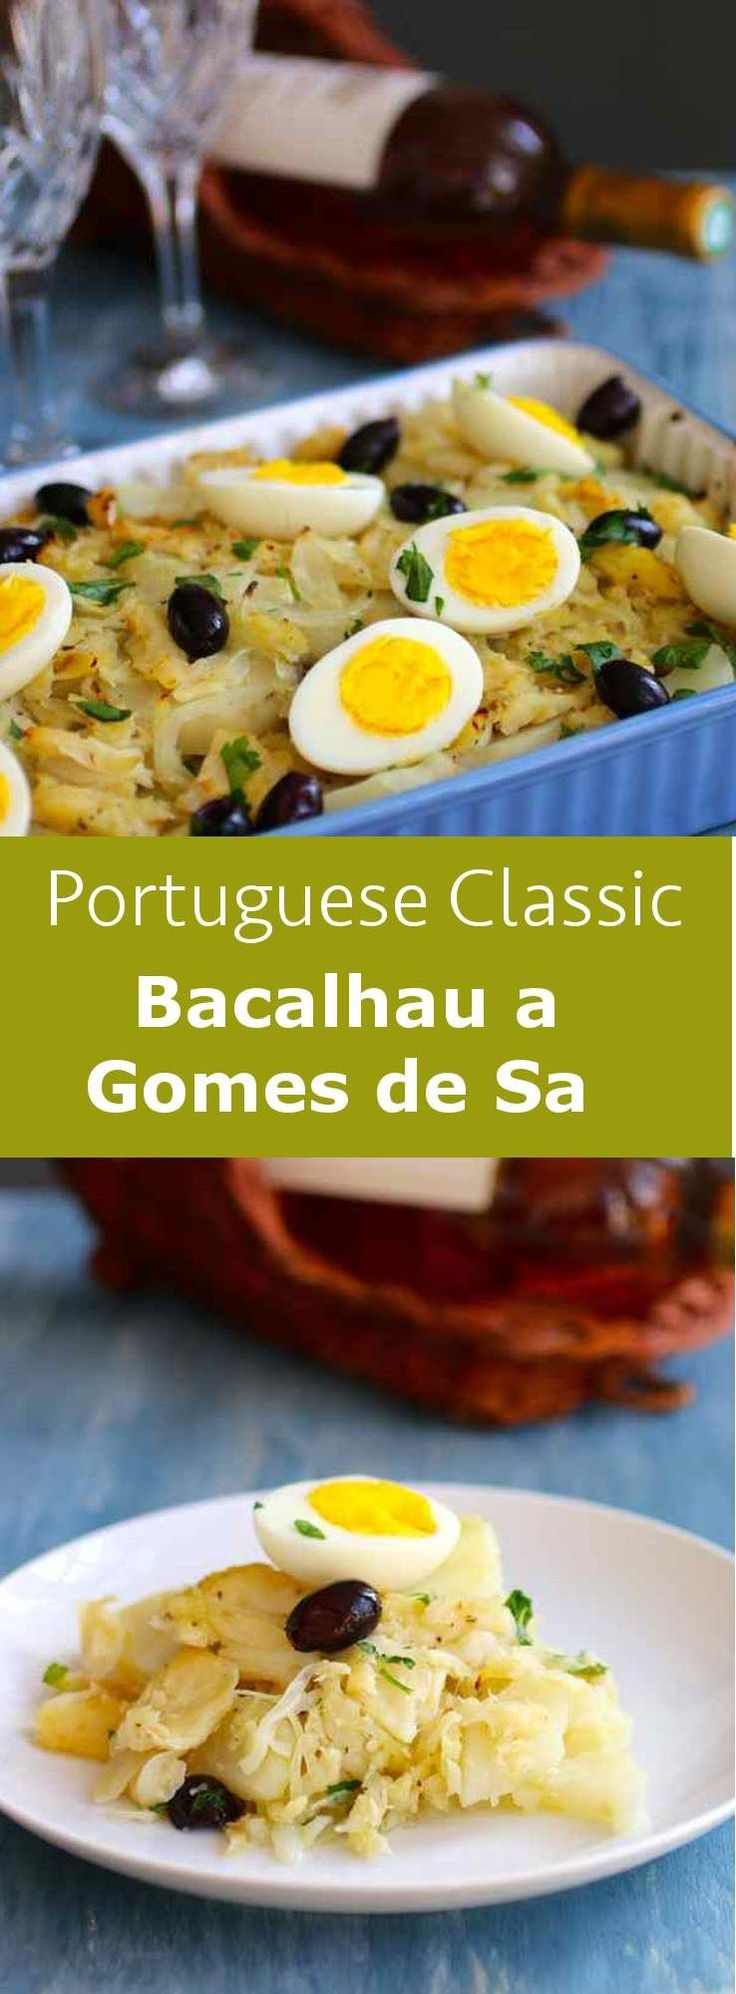 Bacalhau a Gomes de Sa is one of the most famous salted cod fish recipes in Portugal, with potato, onion, garlic and garnished with eggs and olives.